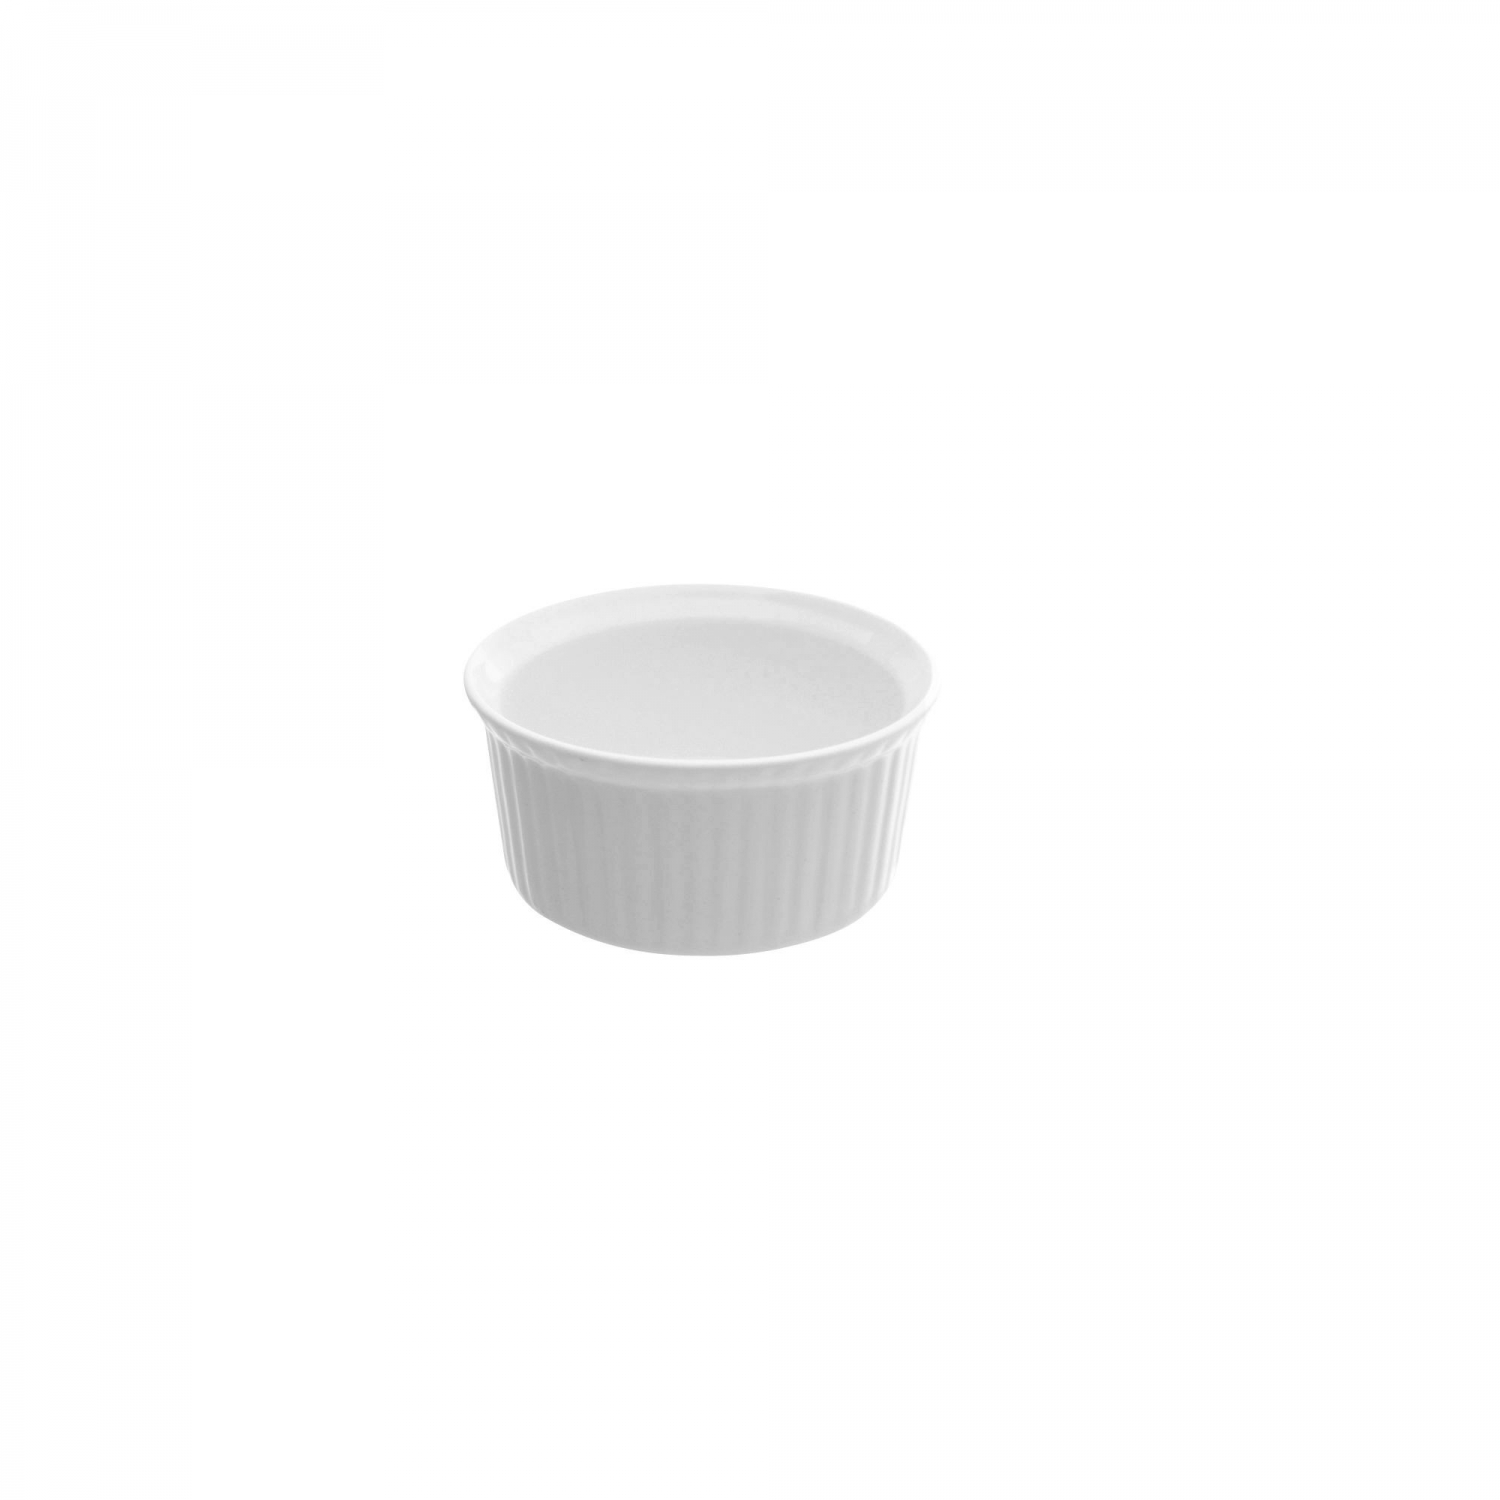 10 Strawberry Street WTR-35SUF Whittier Ramekin 4 oz.